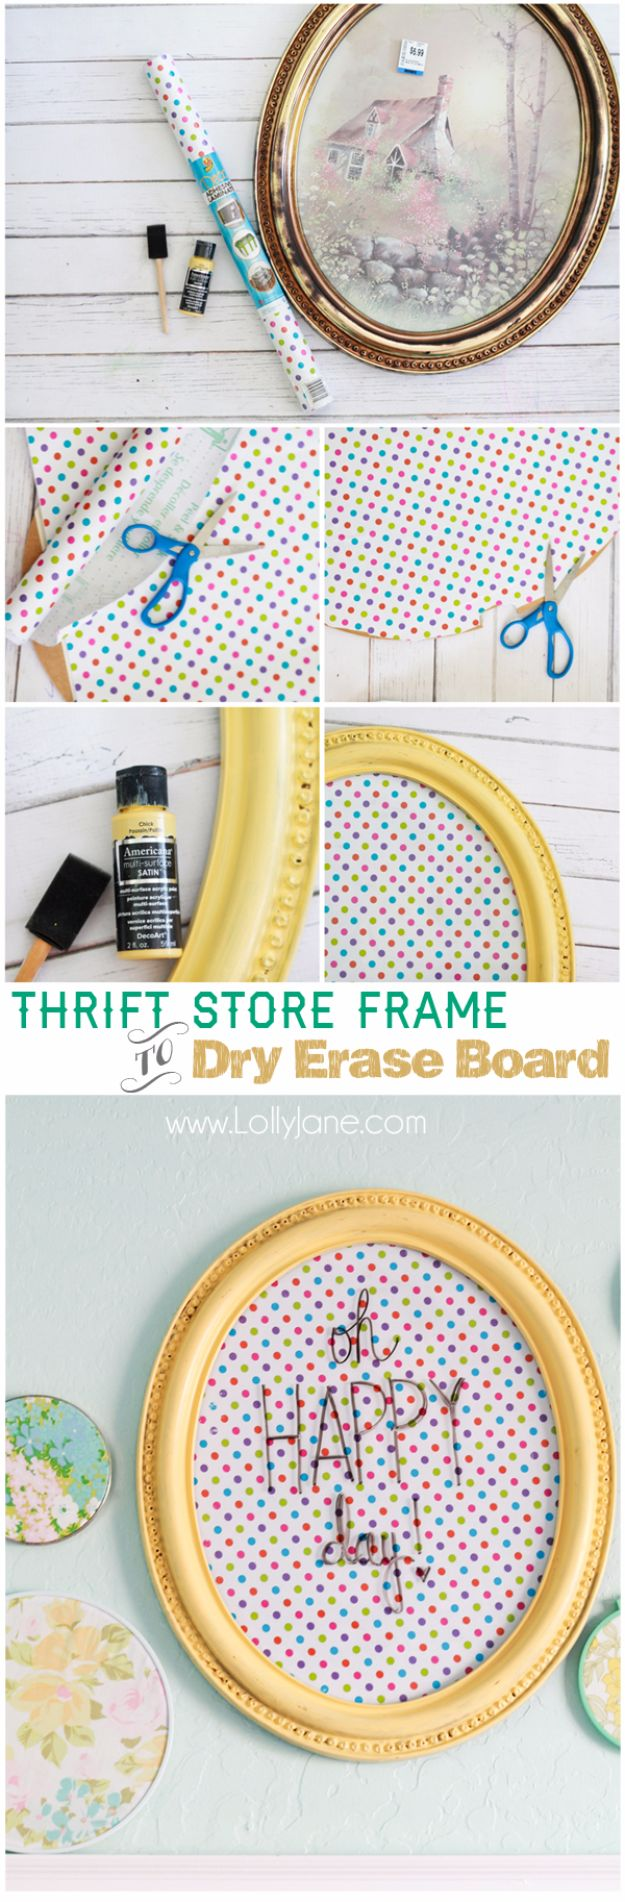 DIY Ideas With Old Picture Frames - Framed Polka Dot Dry Erase Board - Cool Crafts To Make With A Repurposed Picture Frame - Cheap Do It Yourself Gifts and Home Decor on A Budget - Fun Ideas for Decorating Your House and Room http://diyjoy.com/diy-ideas-picture-frames